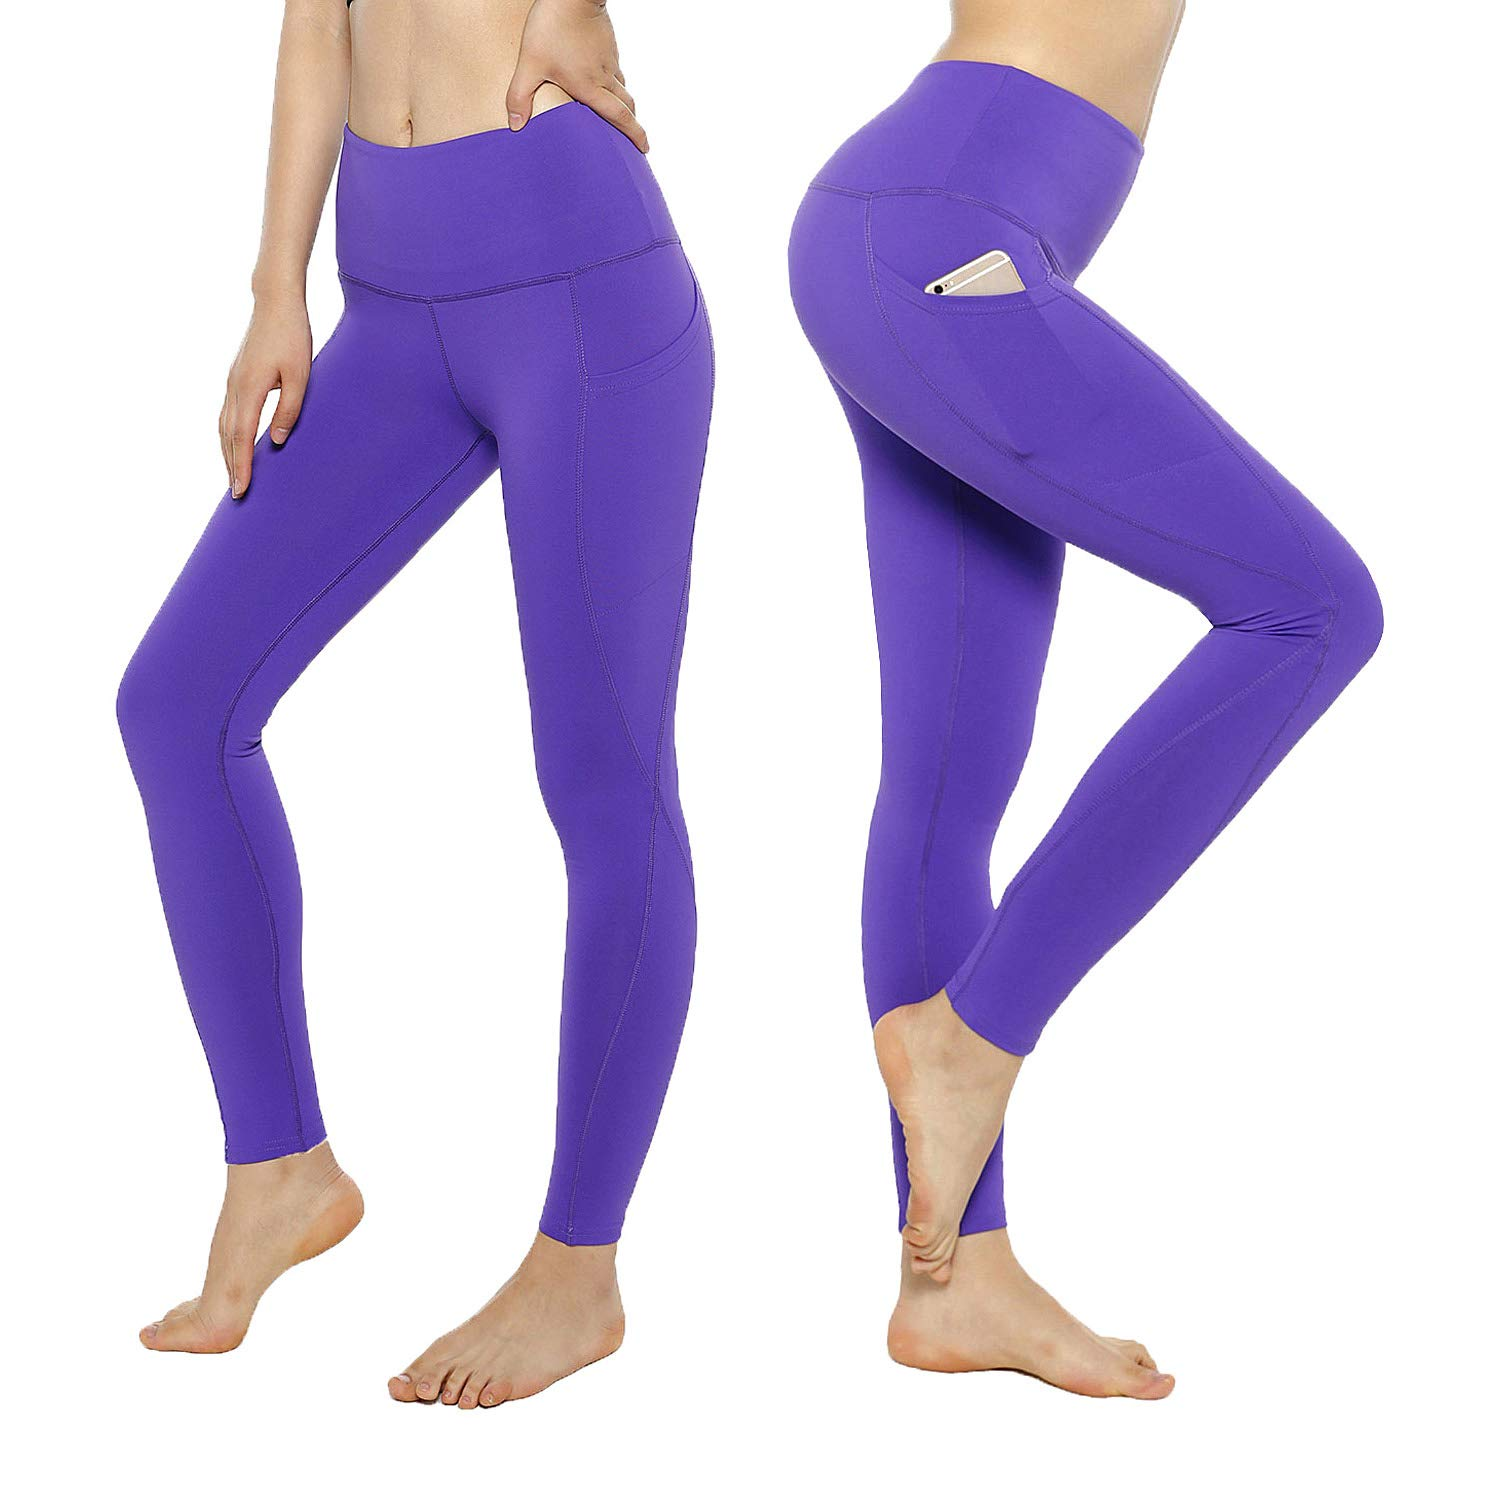 KT Tummy Control Yoga Leggings  High Waisted Super Compression Workout Leggings  Womens Fitness Postpartum Leggings Pants with Pockets (XLarge, PurpleSide Pockets)